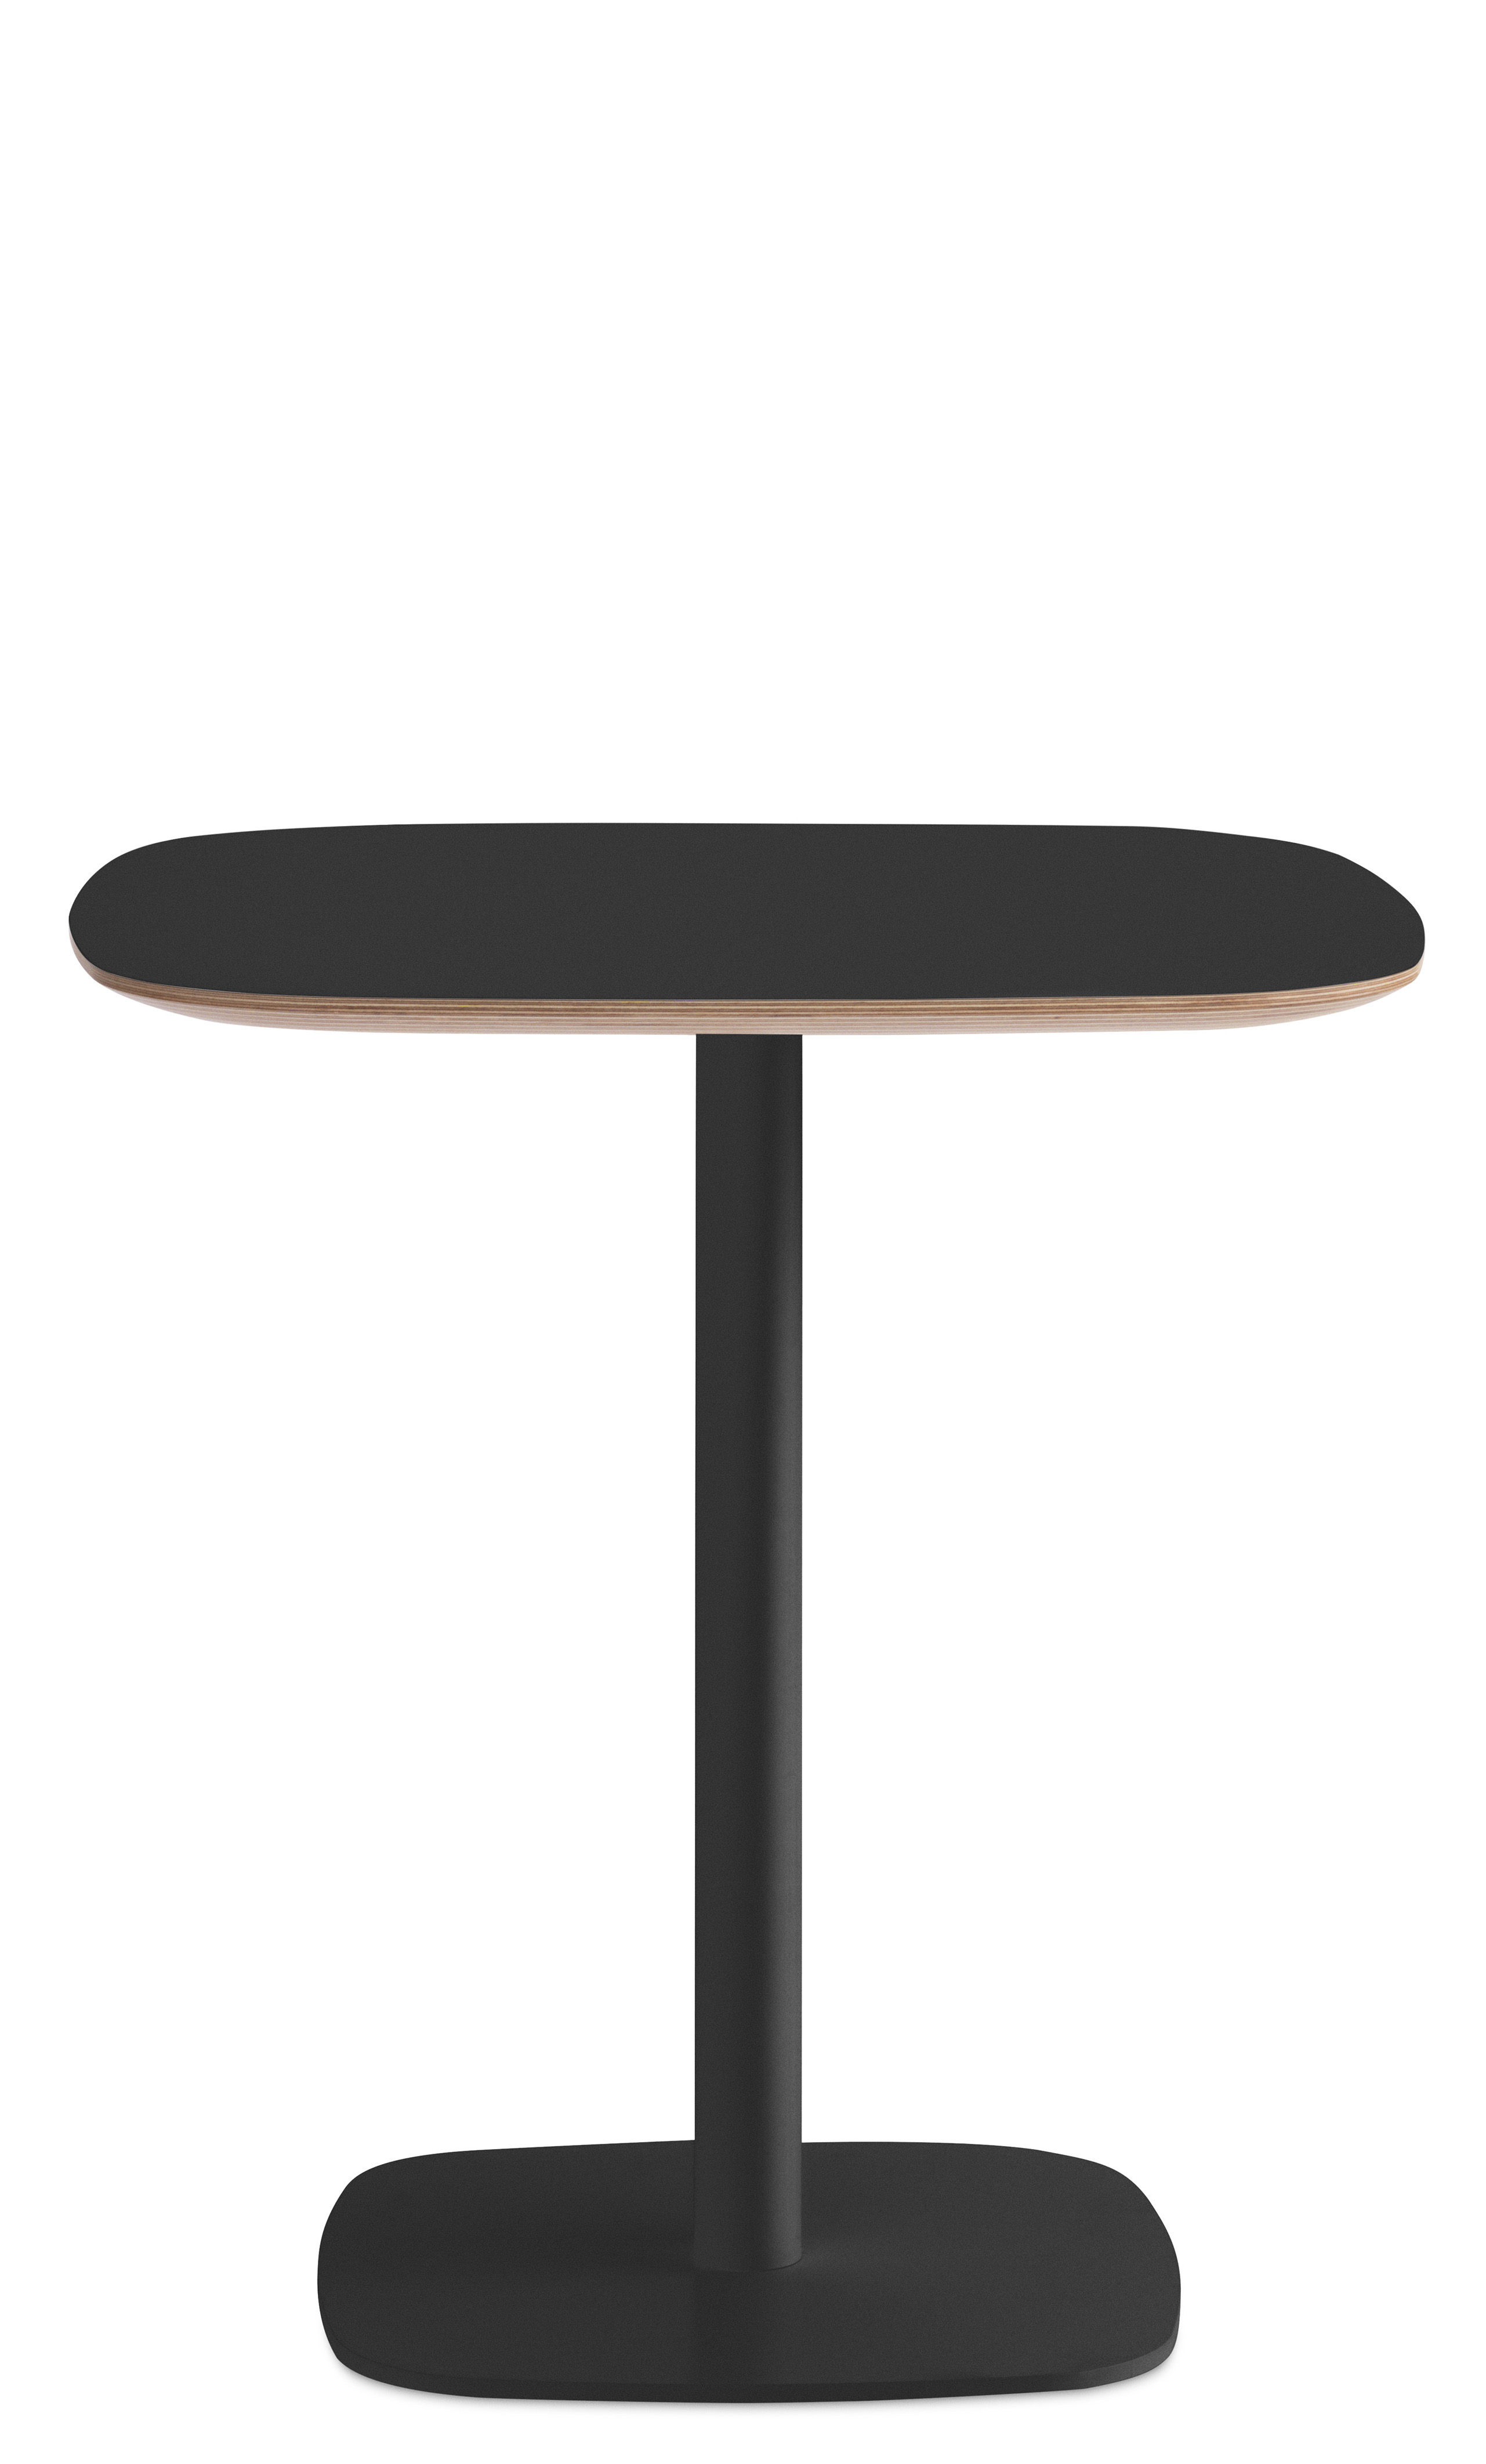 Furniture - Dining Tables - Form Square table - 70 x 70 cm by Normann Copenhagen - Black - Lacquered oak, Lacquered steel, Linoleum coated oak